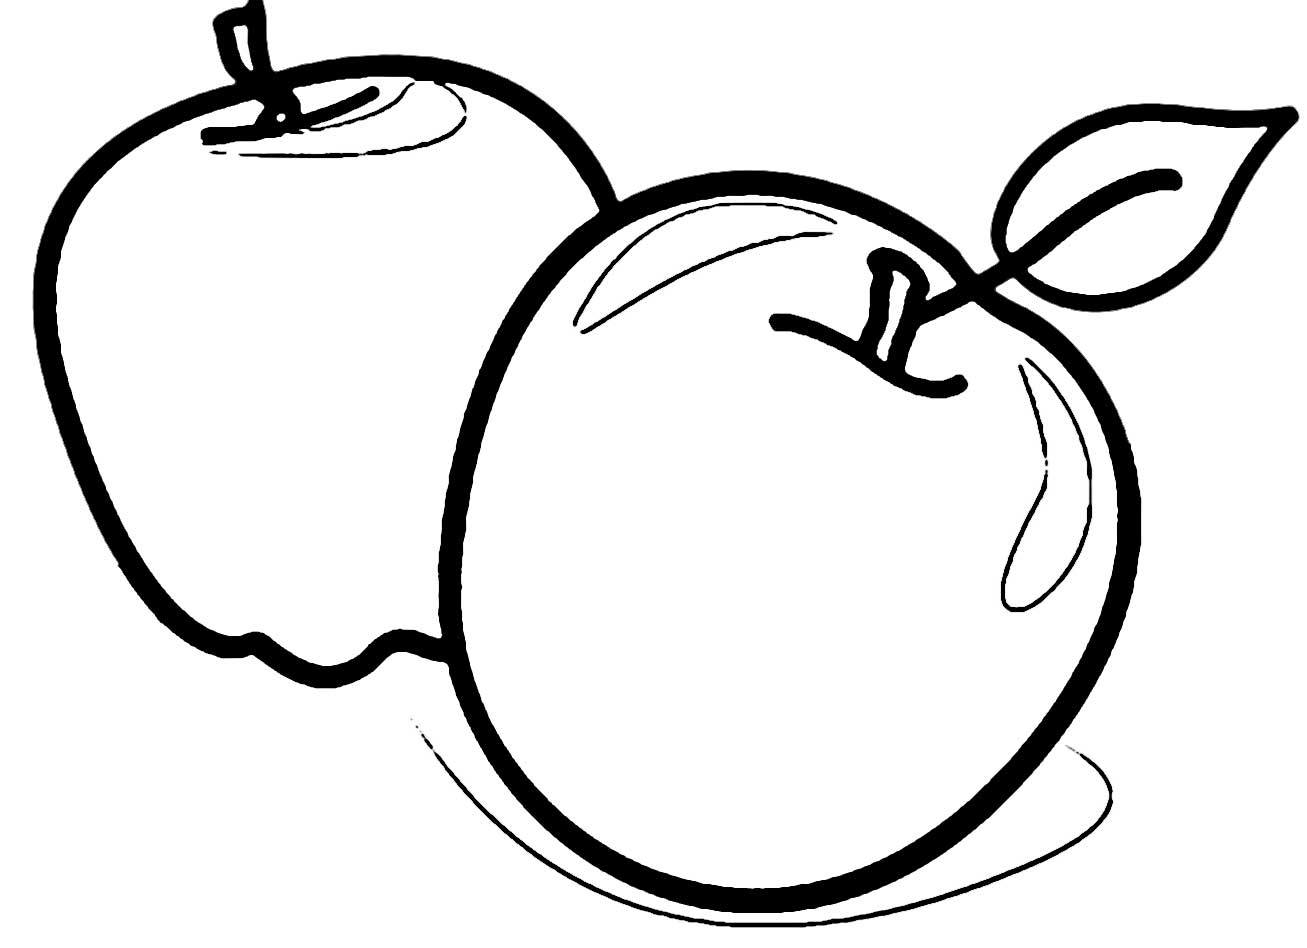 coloring picture of an apple apple coloring pages fotolipcom rich image and wallpaper of picture apple an coloring